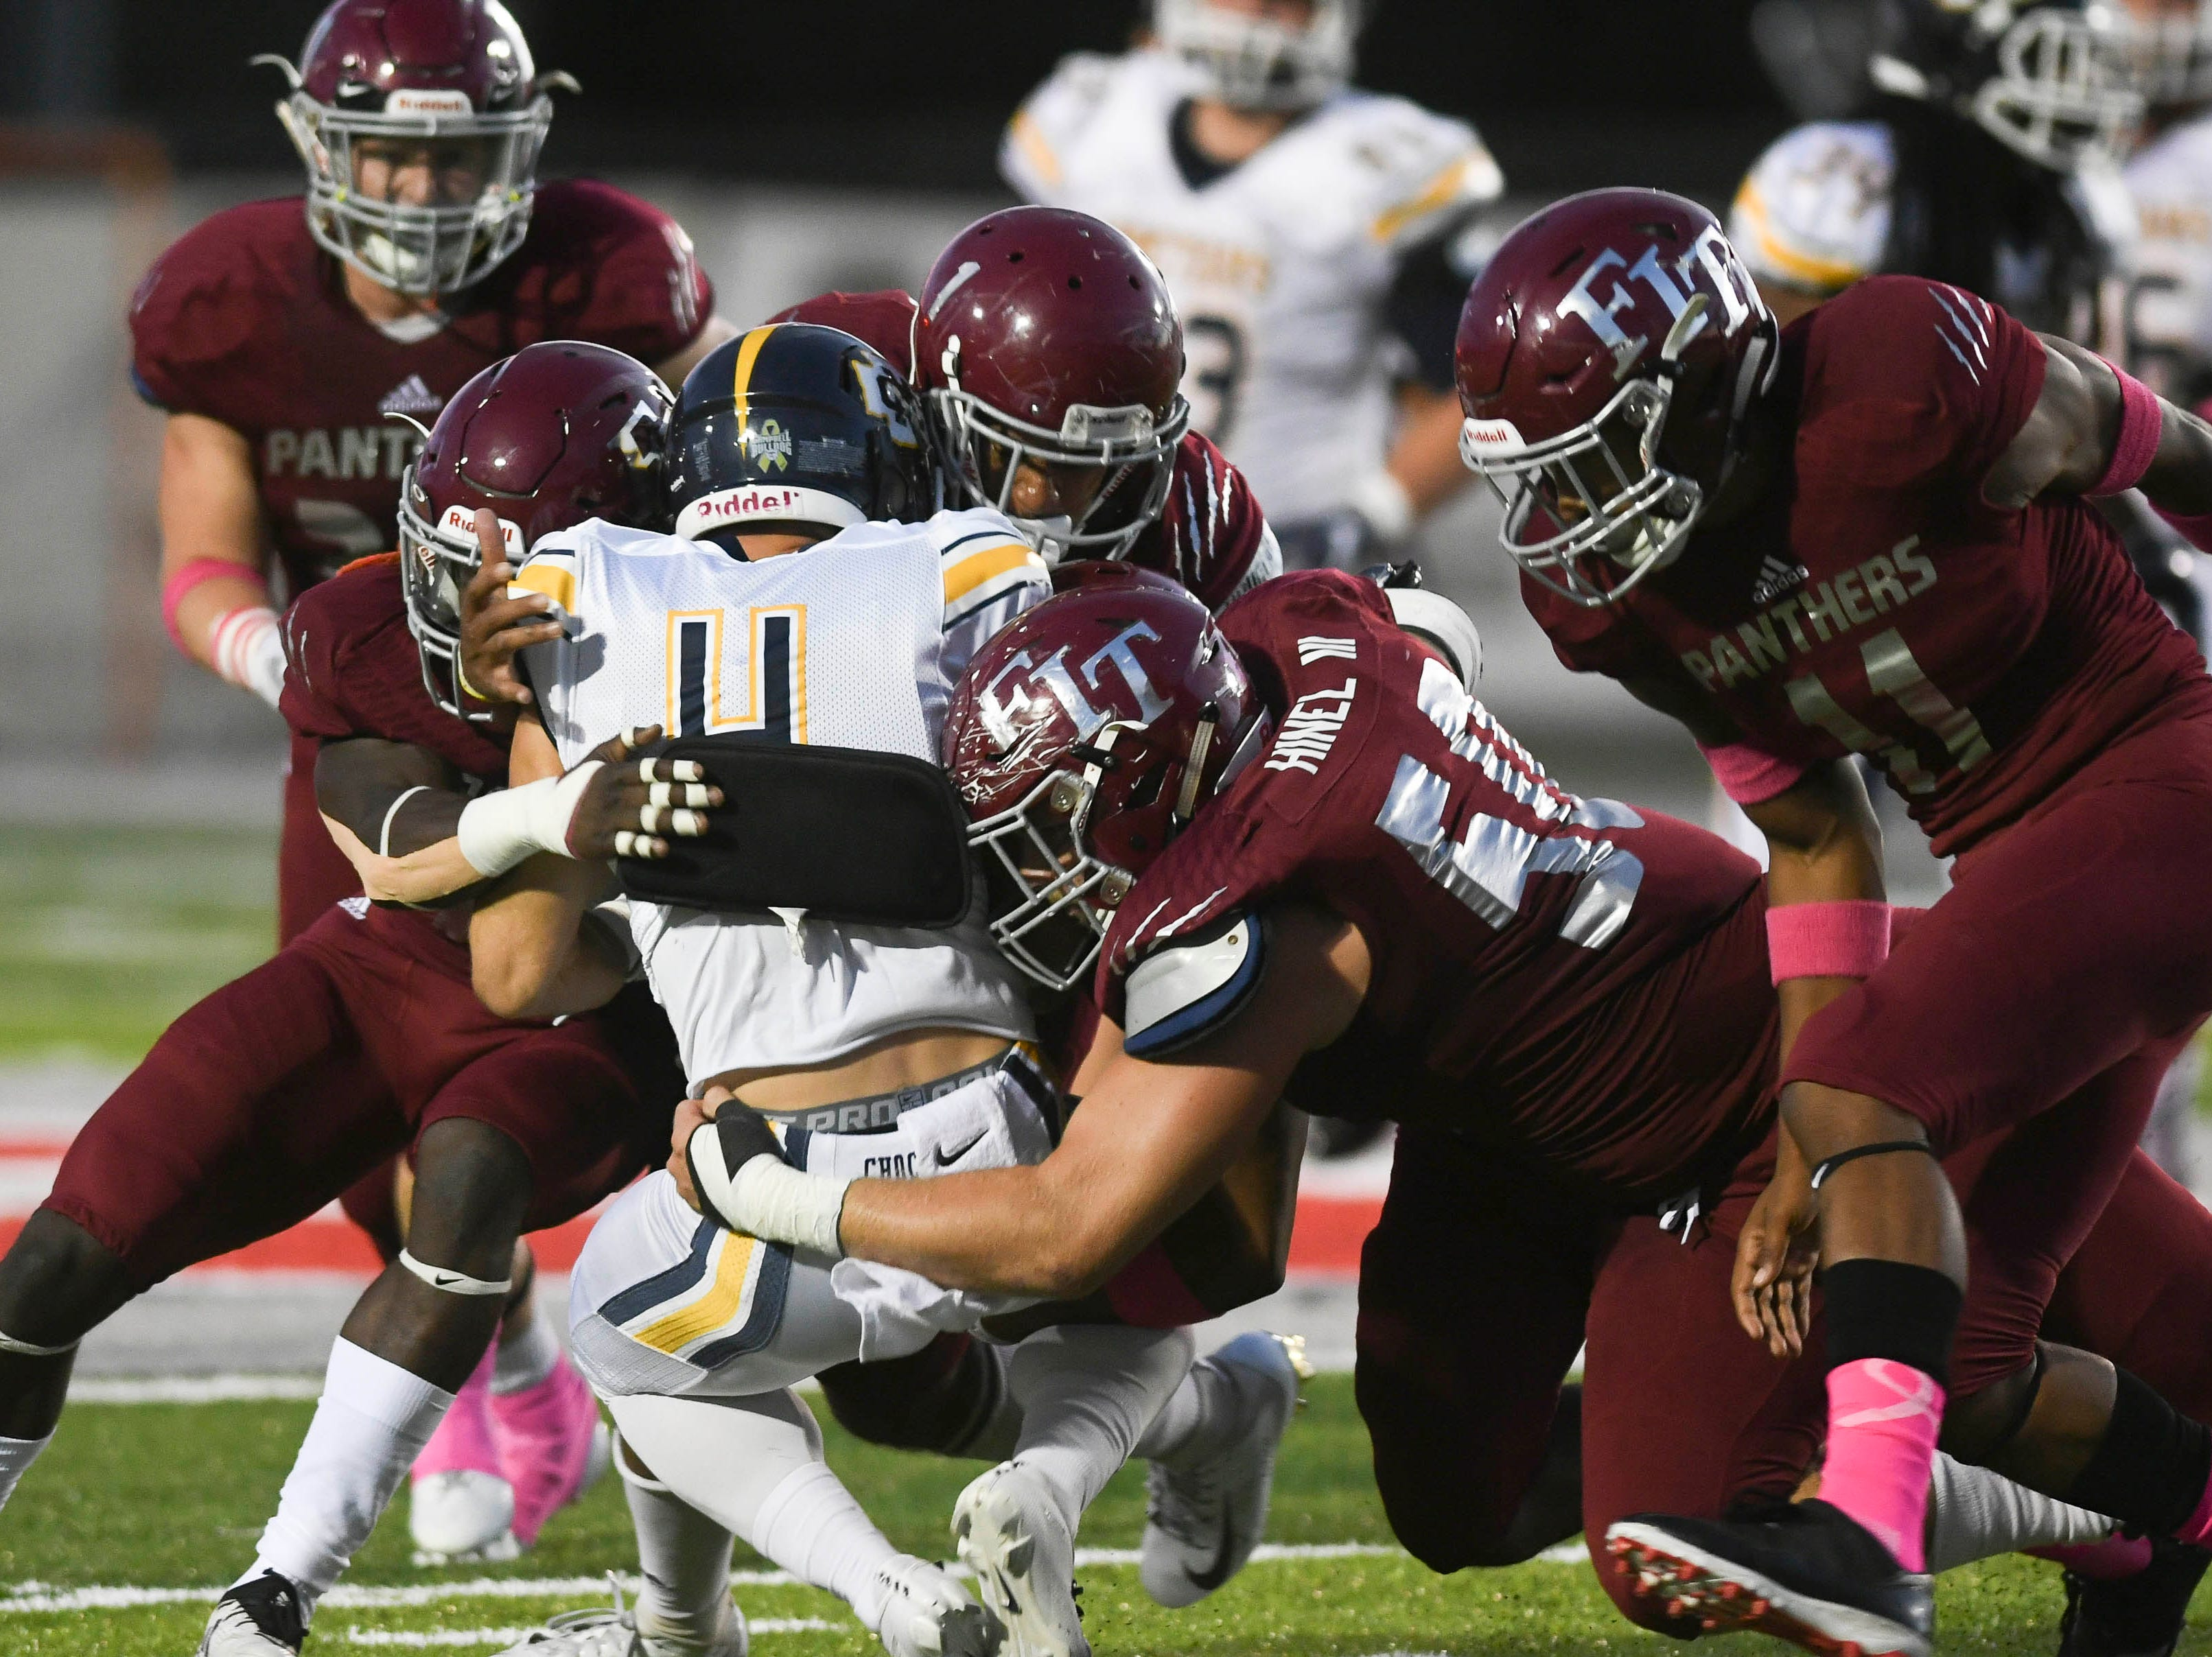 Colt Freeman of Mississippi College is stopped by a bunch of Florida Tech defenders during Saturday's game at Panther Stadium